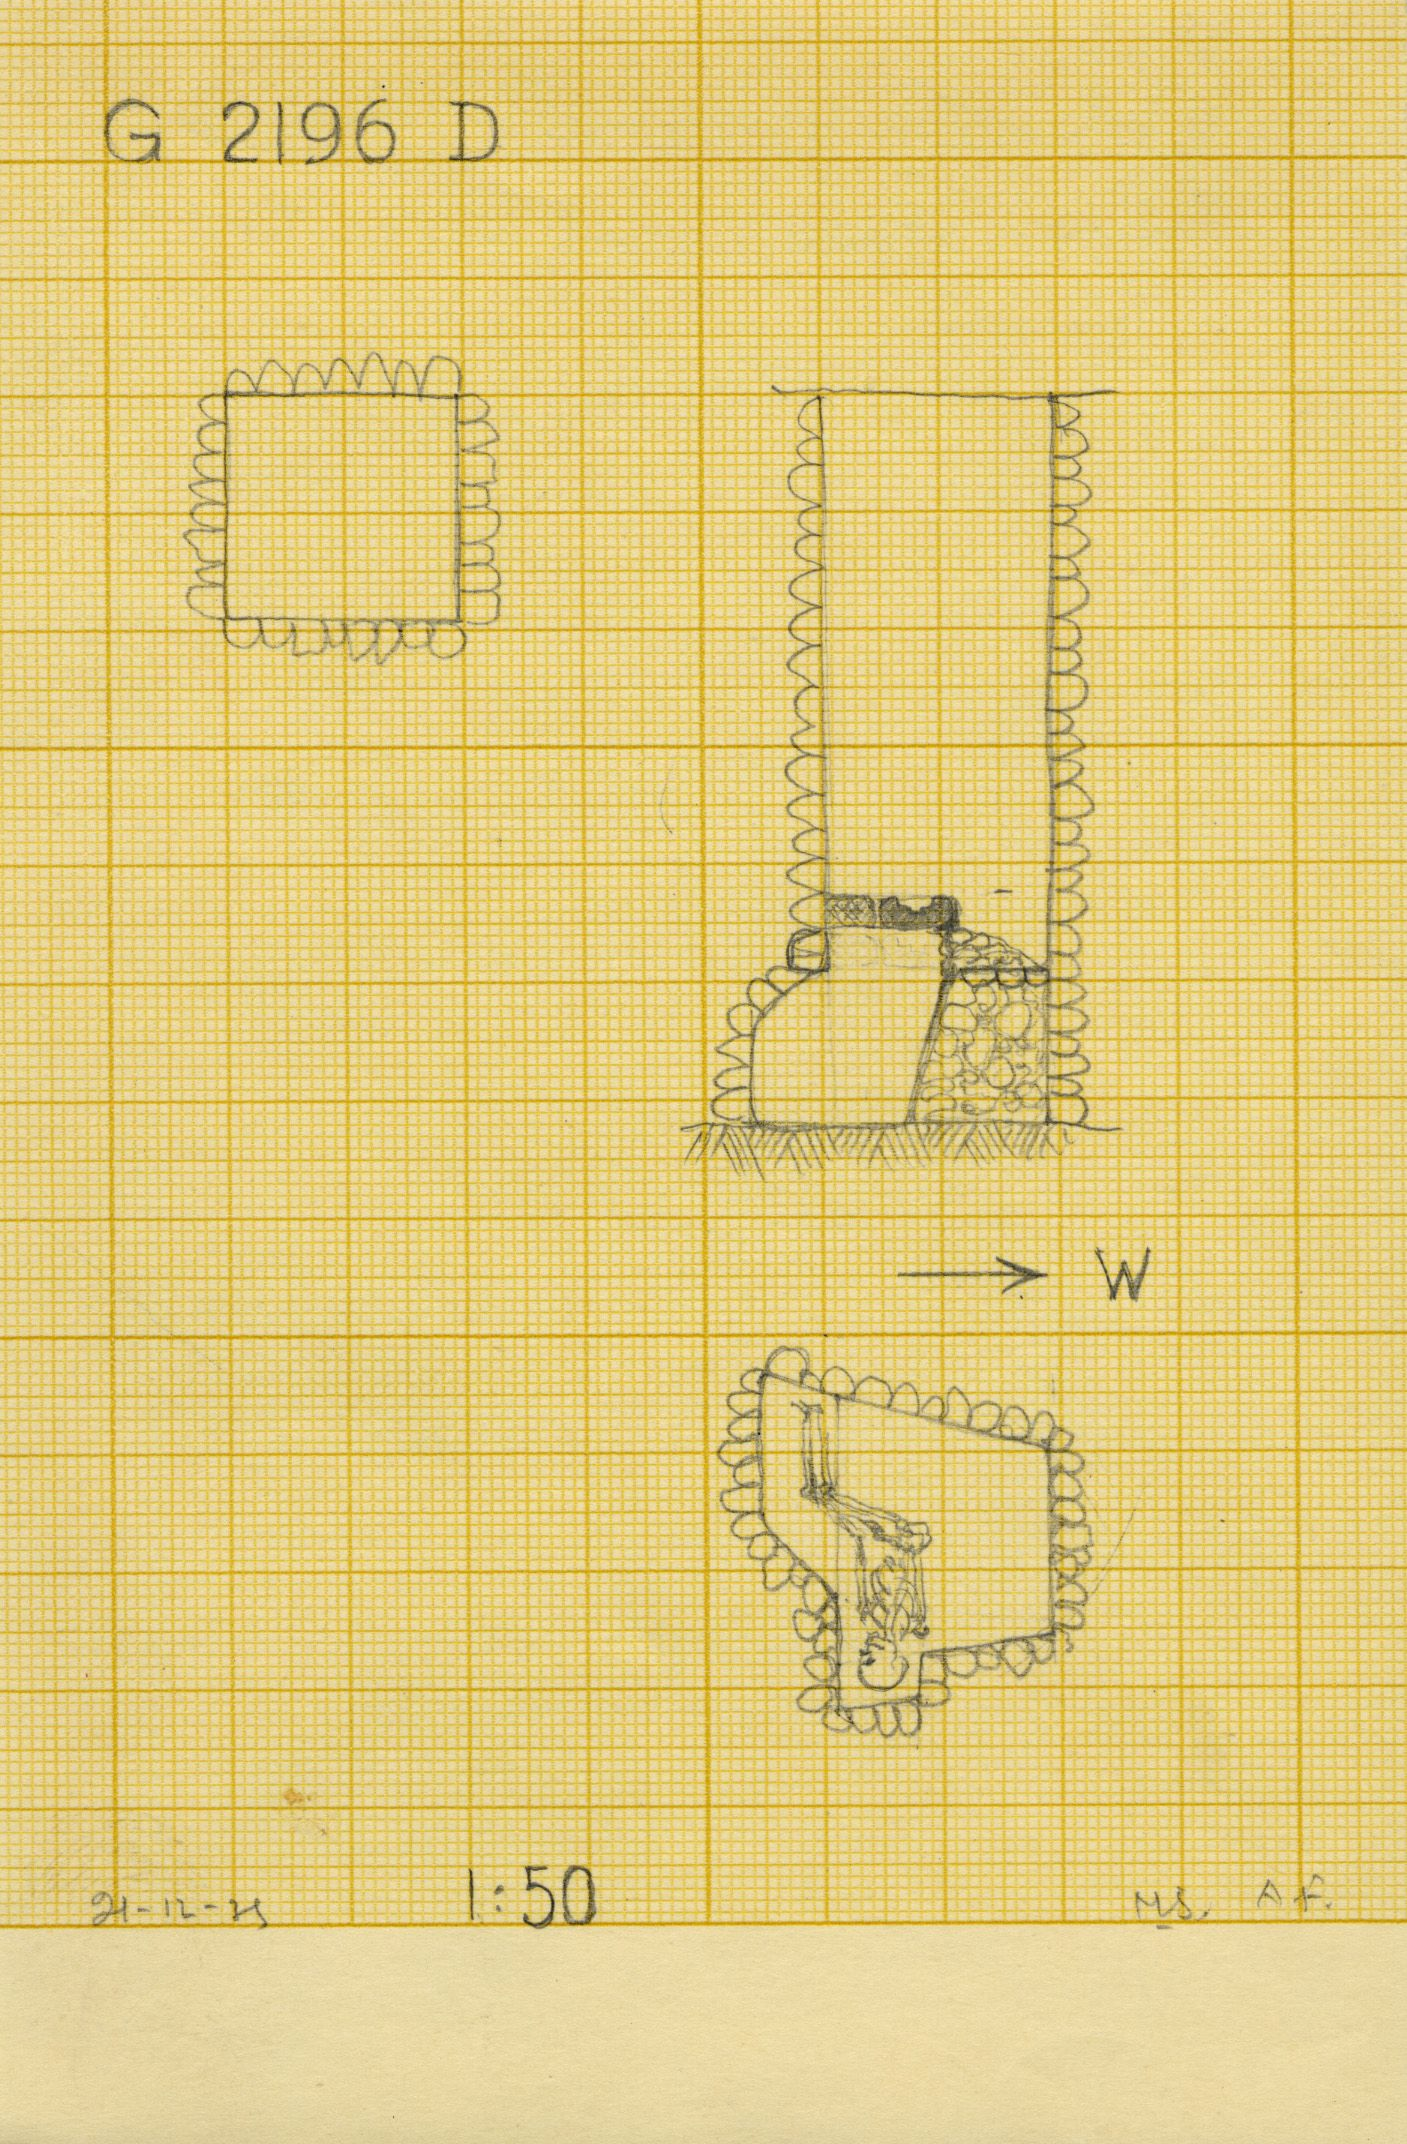 Maps and plans: G 2196, Shaft D